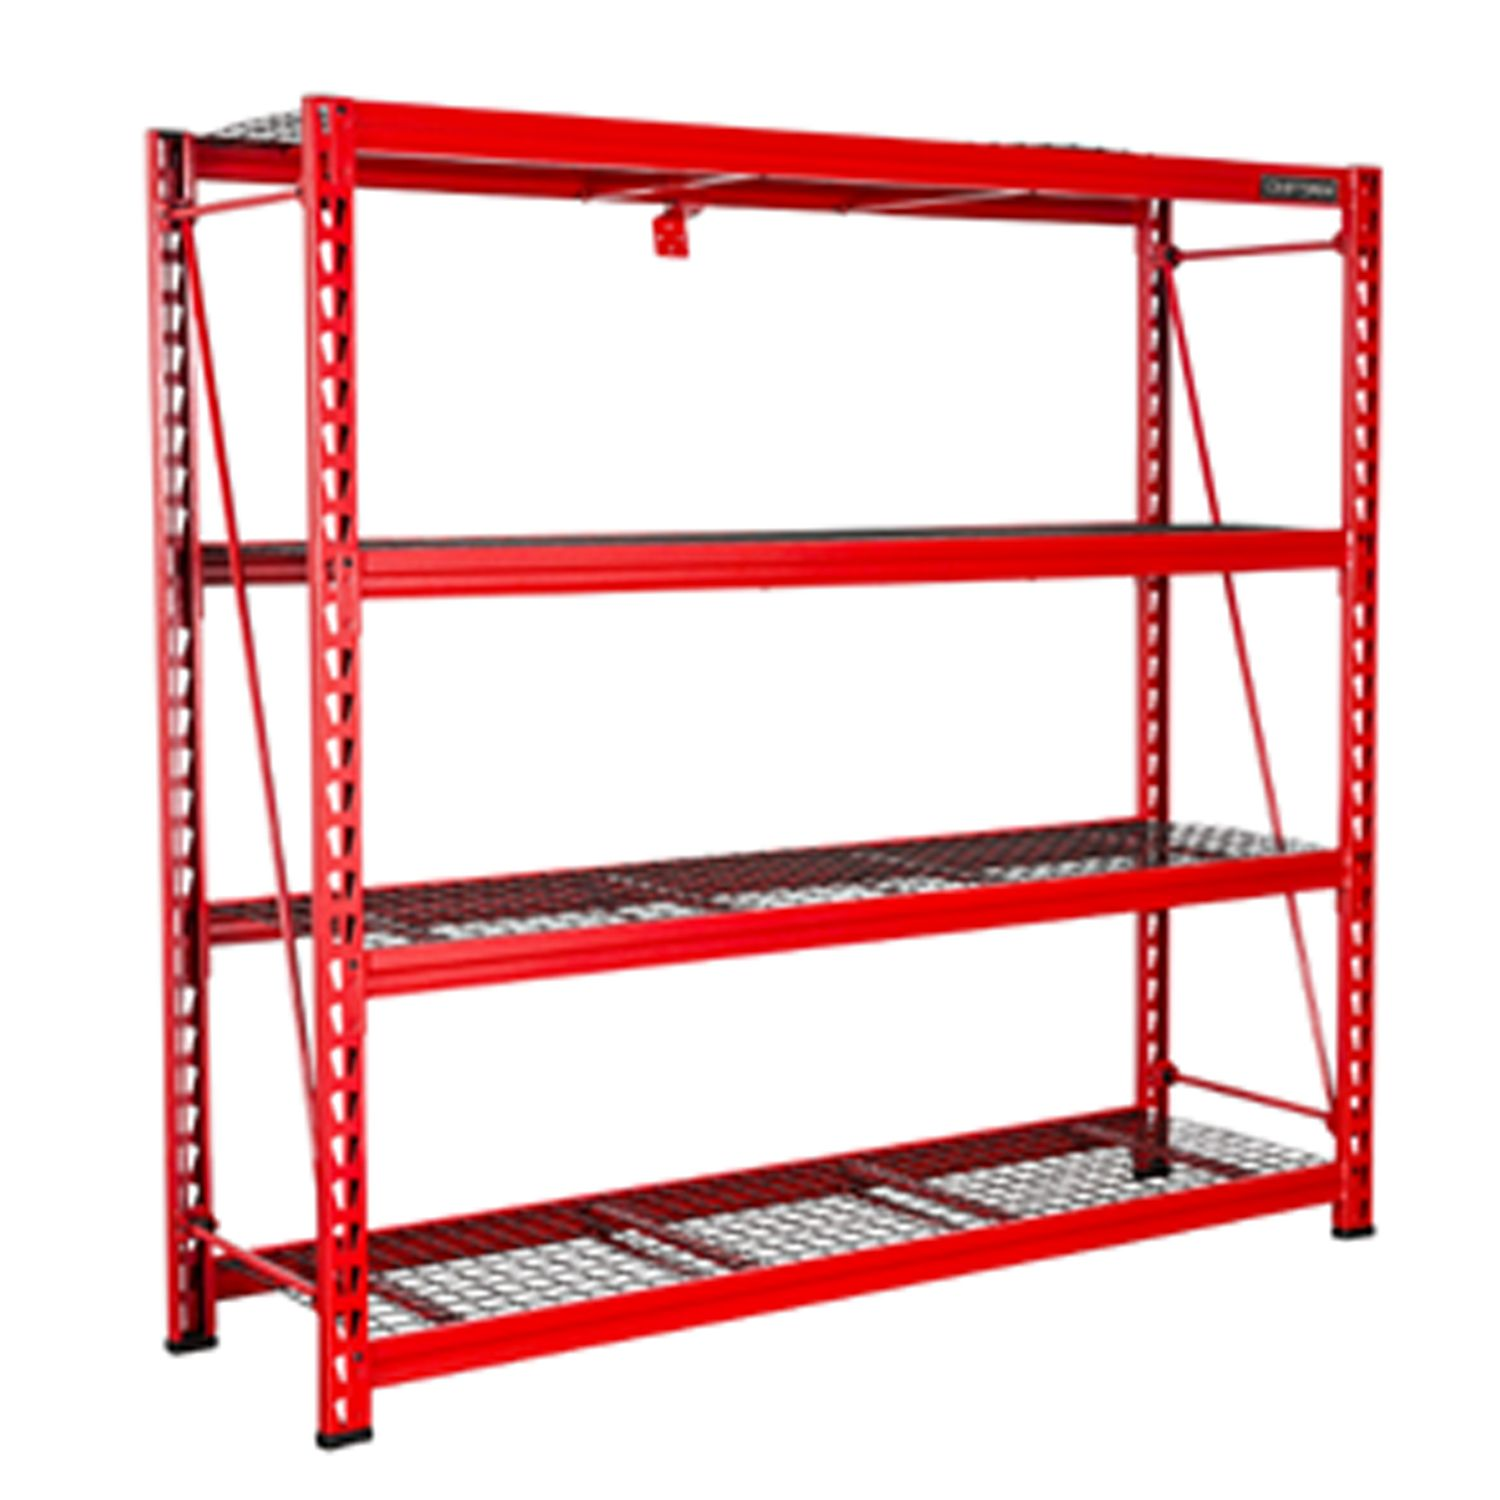 Metal Shelving Units, Craftsman 6 Heavy Duty Floor Cabinet With 4 Shelves